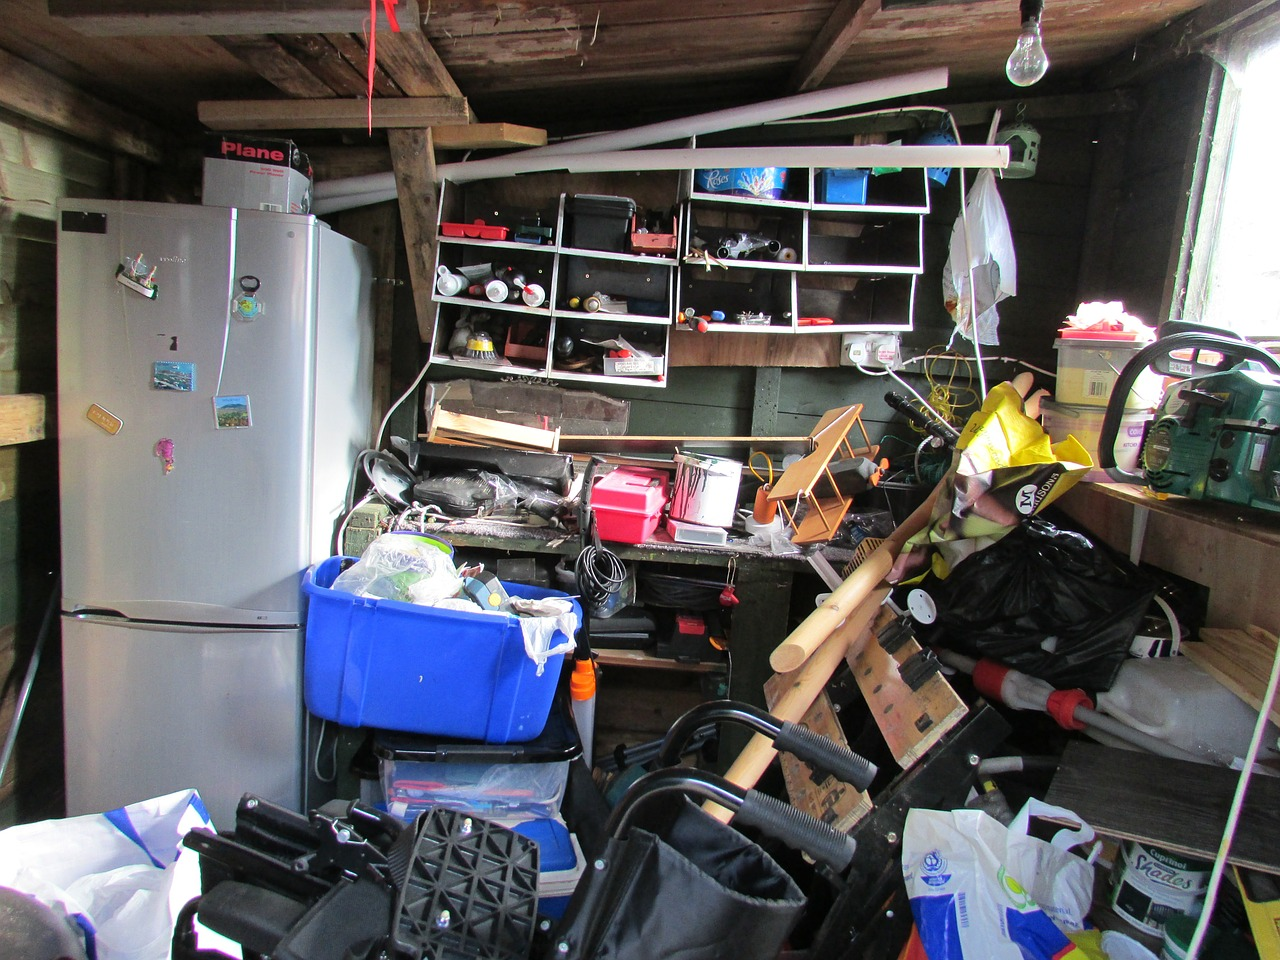 Cutting through the clutter: What research says about tidying up